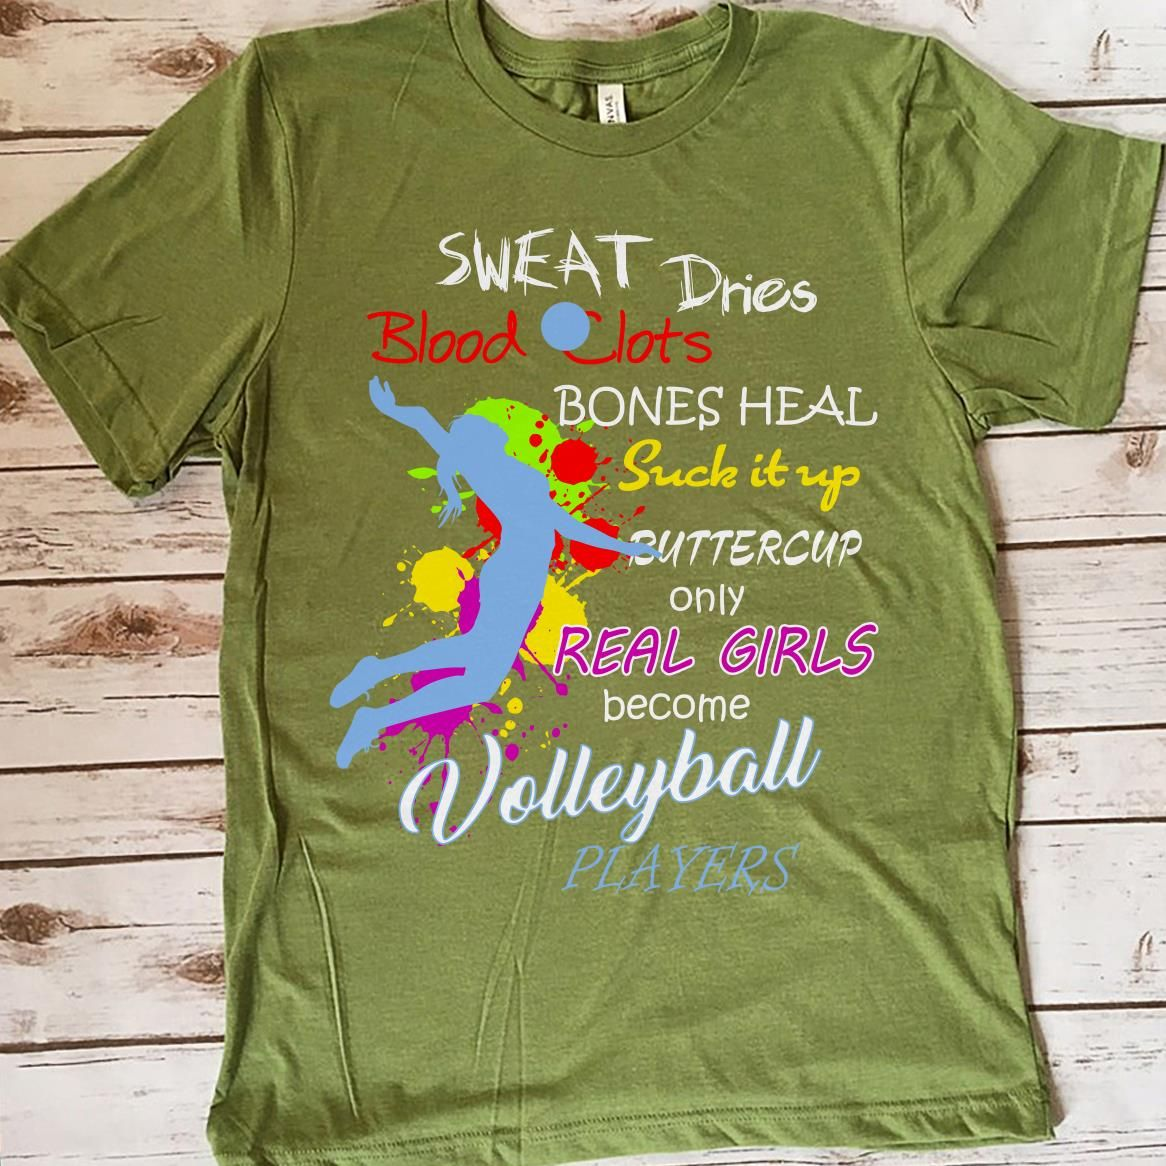 Only Real Girls Become Volleyball Players Great Gifts For Volleyball Players Volleyball Lovers Mom Dad Son Da Volleyball Tshirts Great T Shirts Real Girls